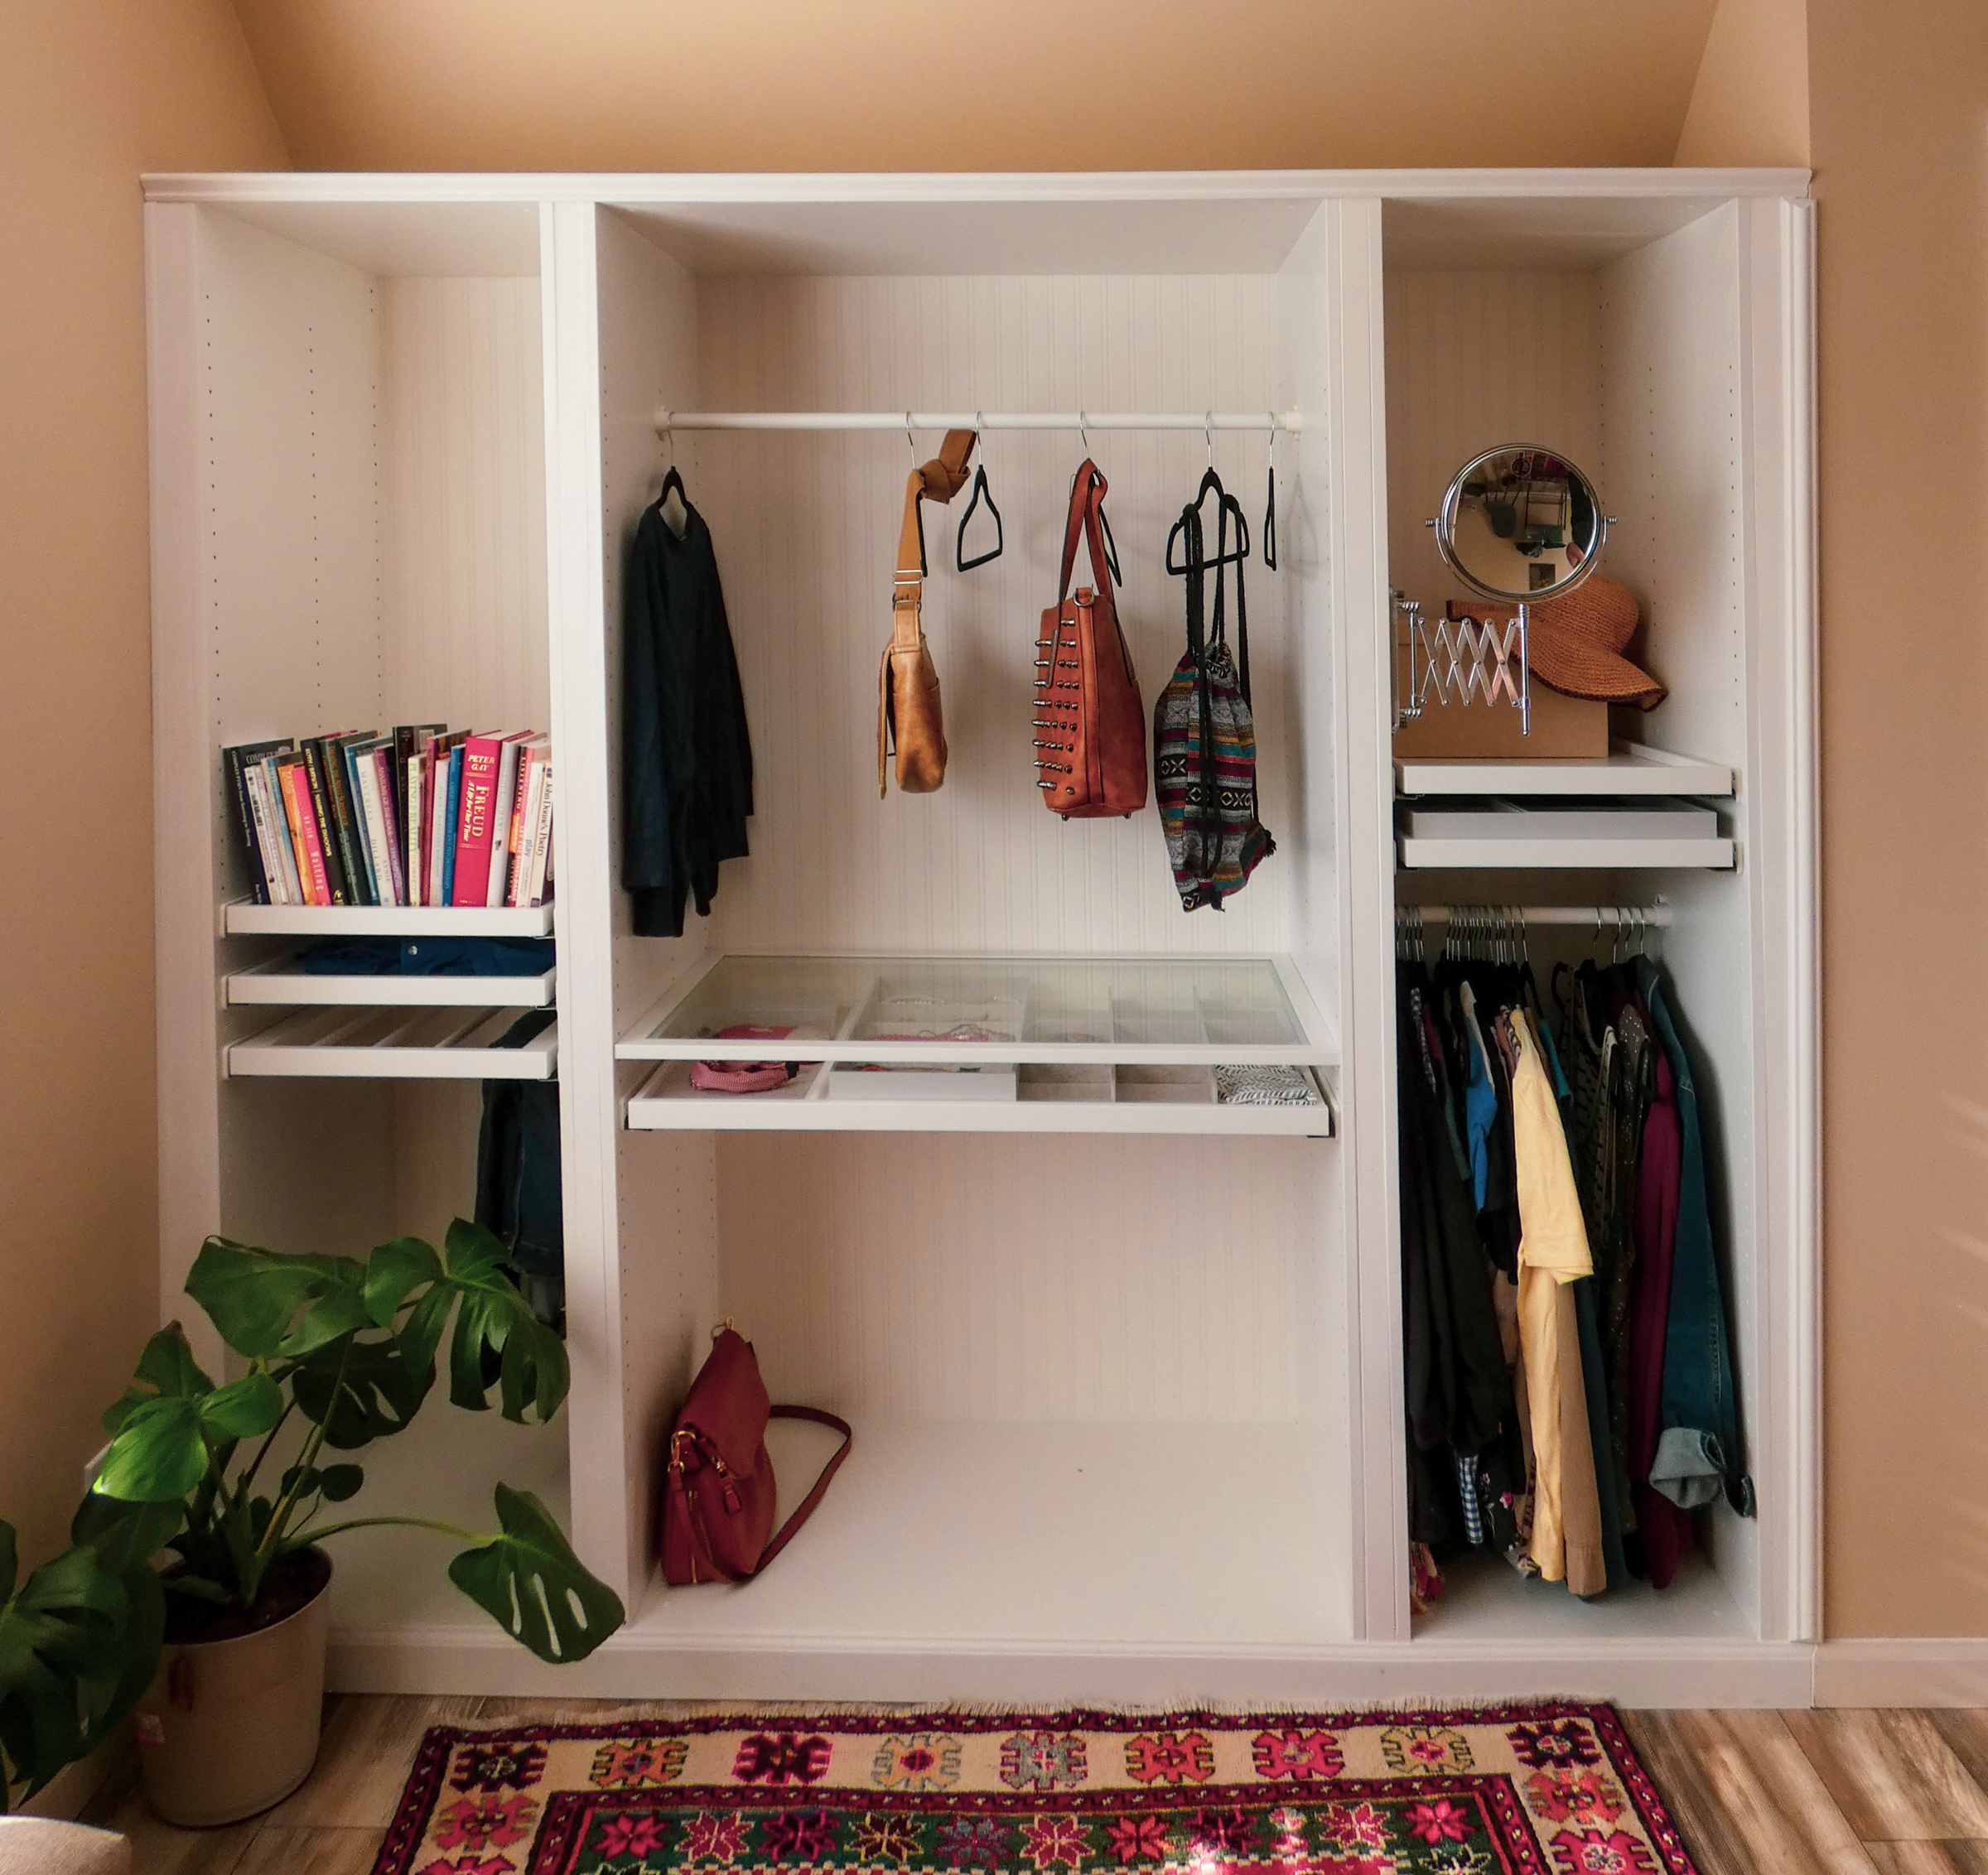 A wardrobe built into a wall of the bedroom.